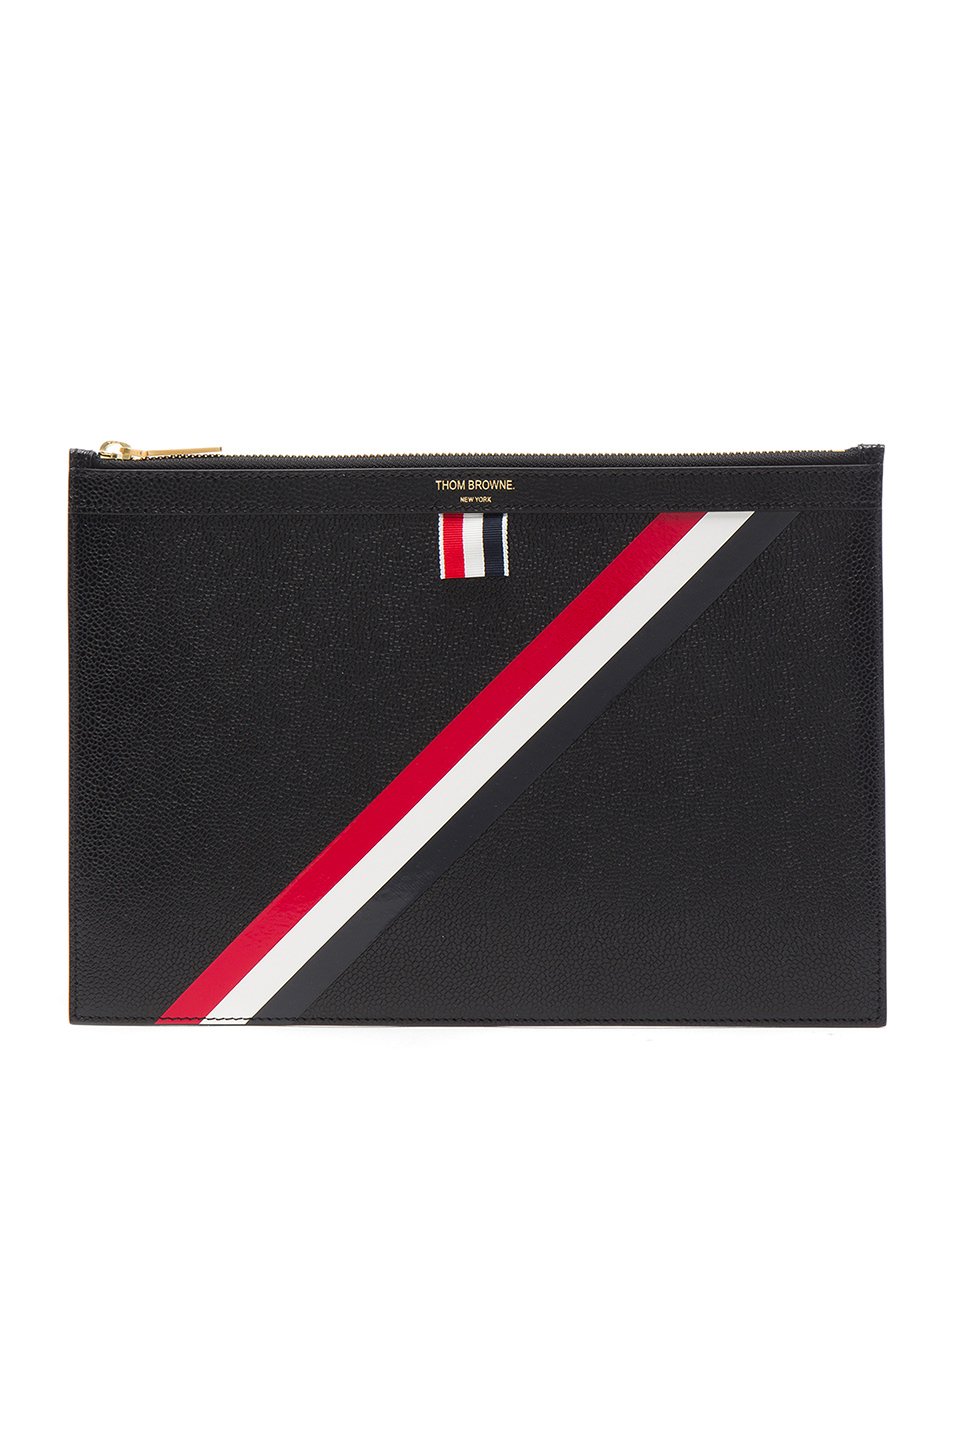 Thom Browne Small Zipper Tablet Holder in Black